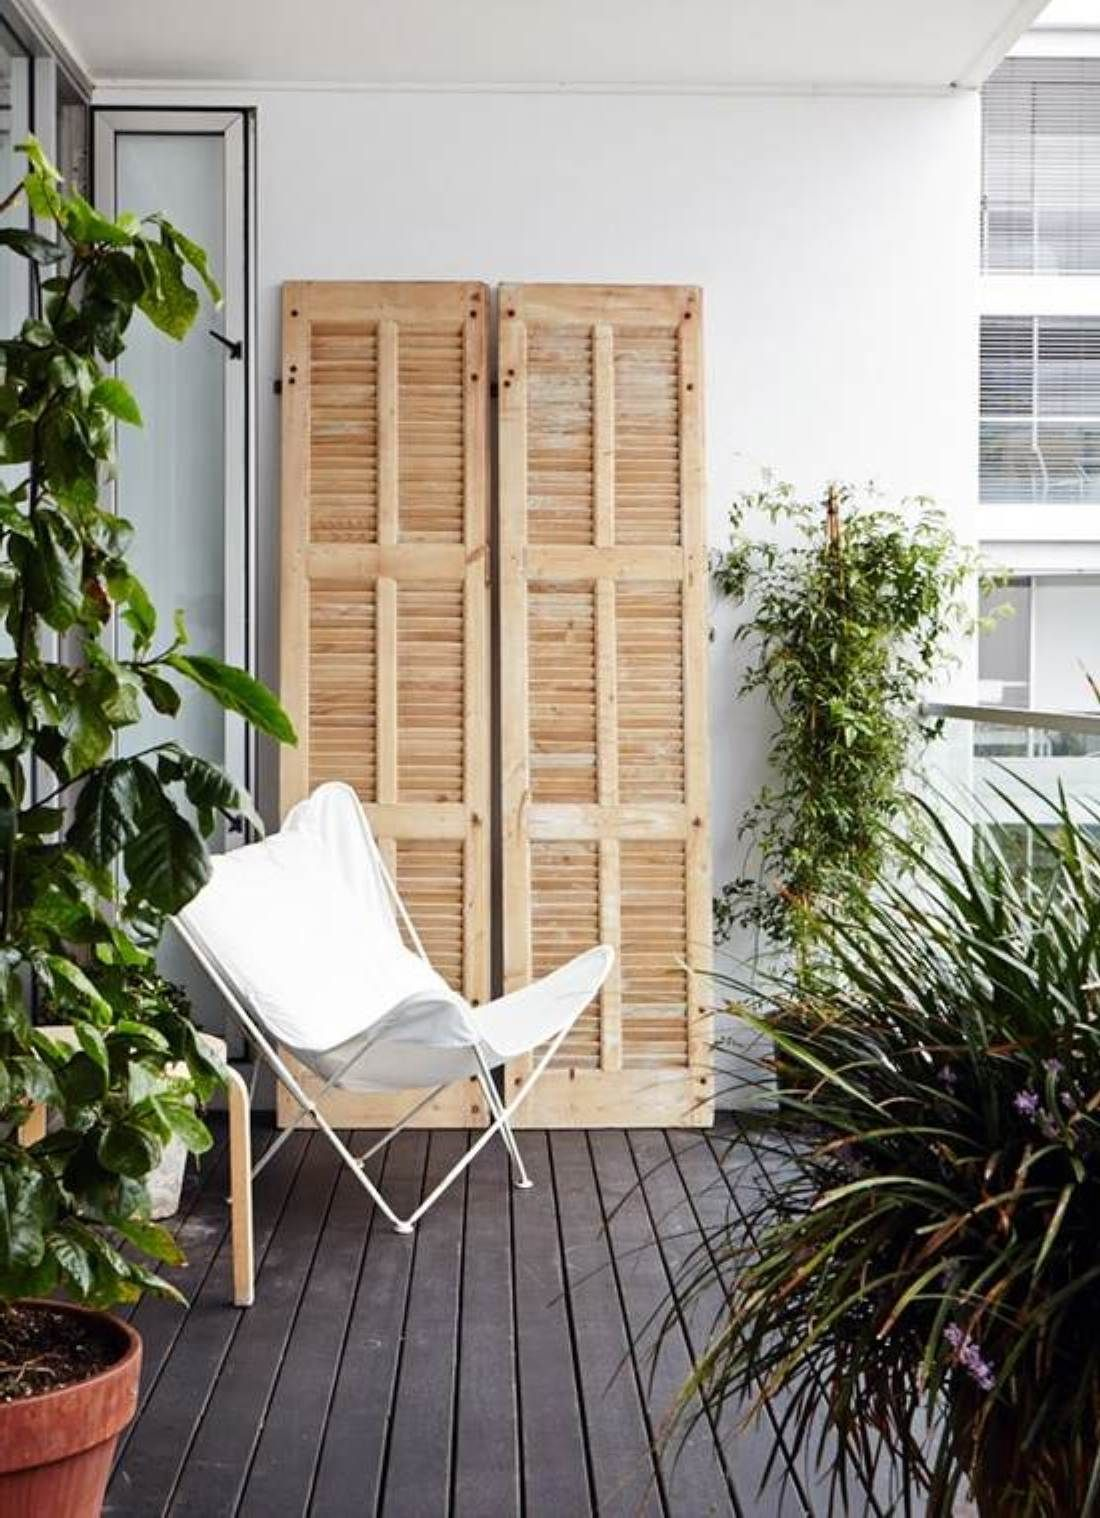 Apartment balcony ideas pictures to pin on pinterest - Find This Pin And More On Balkonien Smart Ideas For Decorating Tiny Balcony Apartment